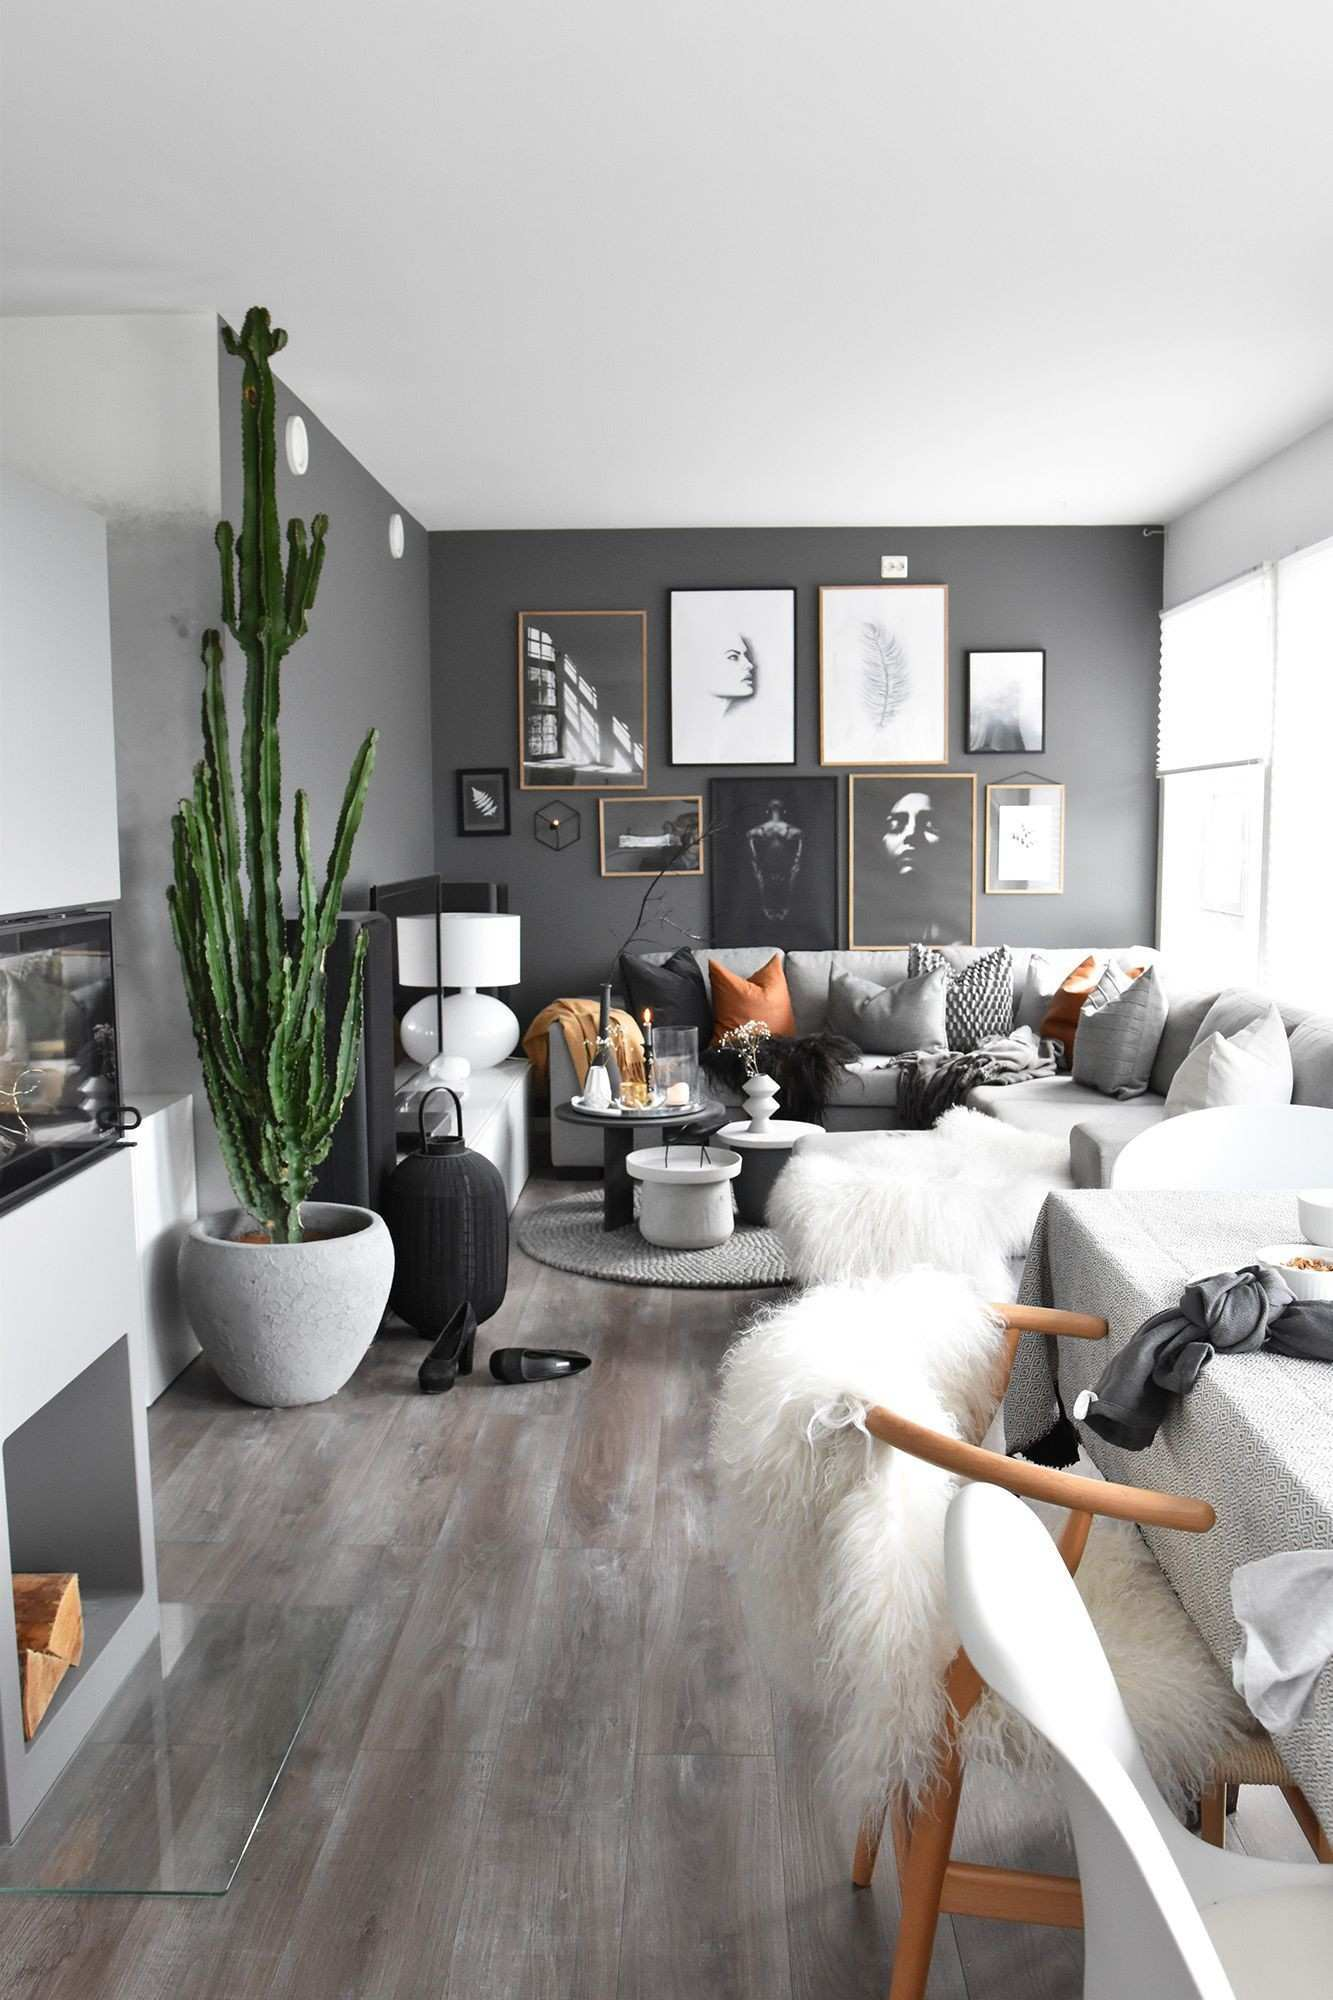 Living Room Wall Decor Ideas 2017 New 36 Best Decorating Living Room